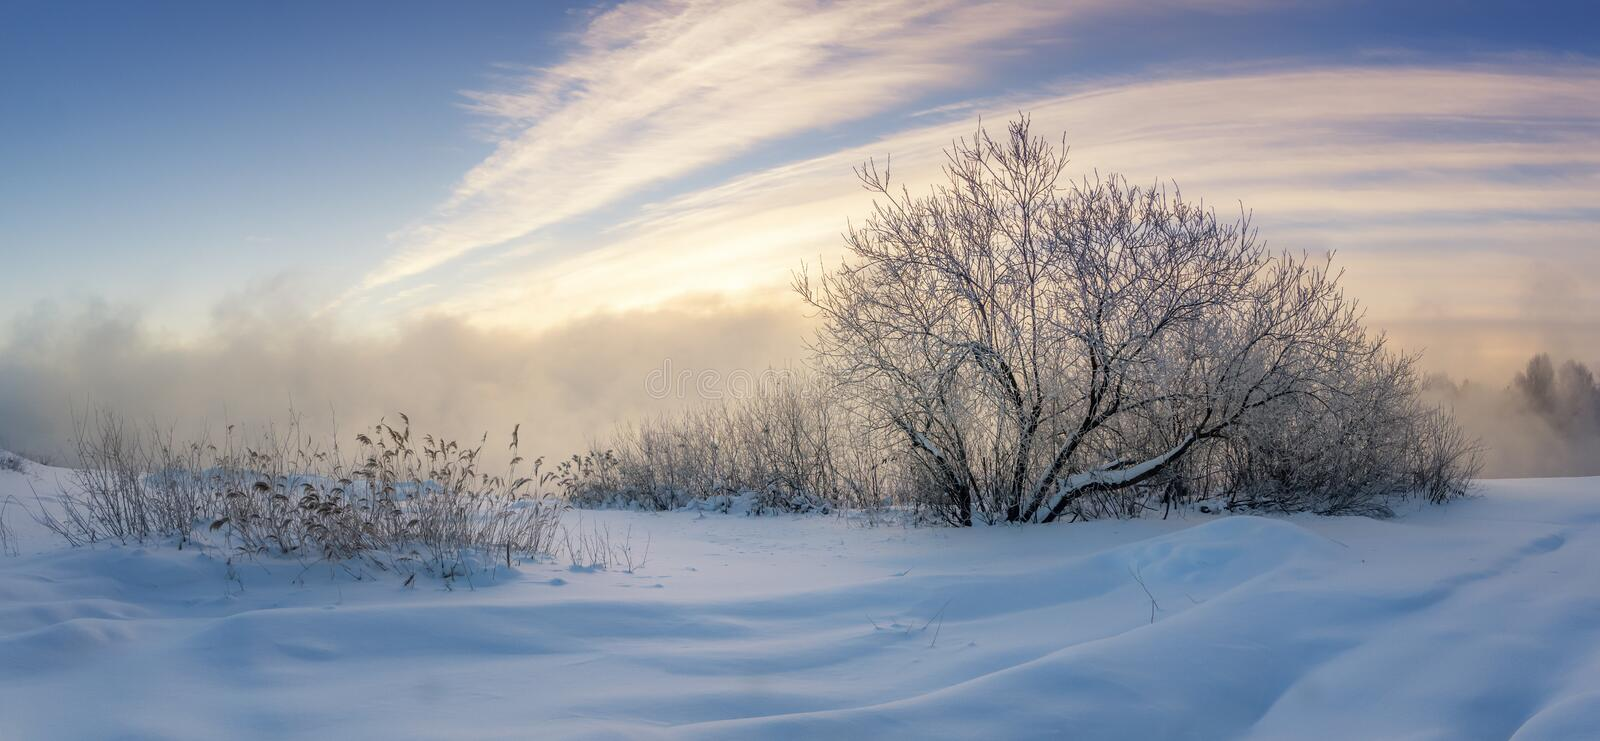 Frozen bushes on the shore of foggy lake in winter, Russia, Ural royalty free stock image